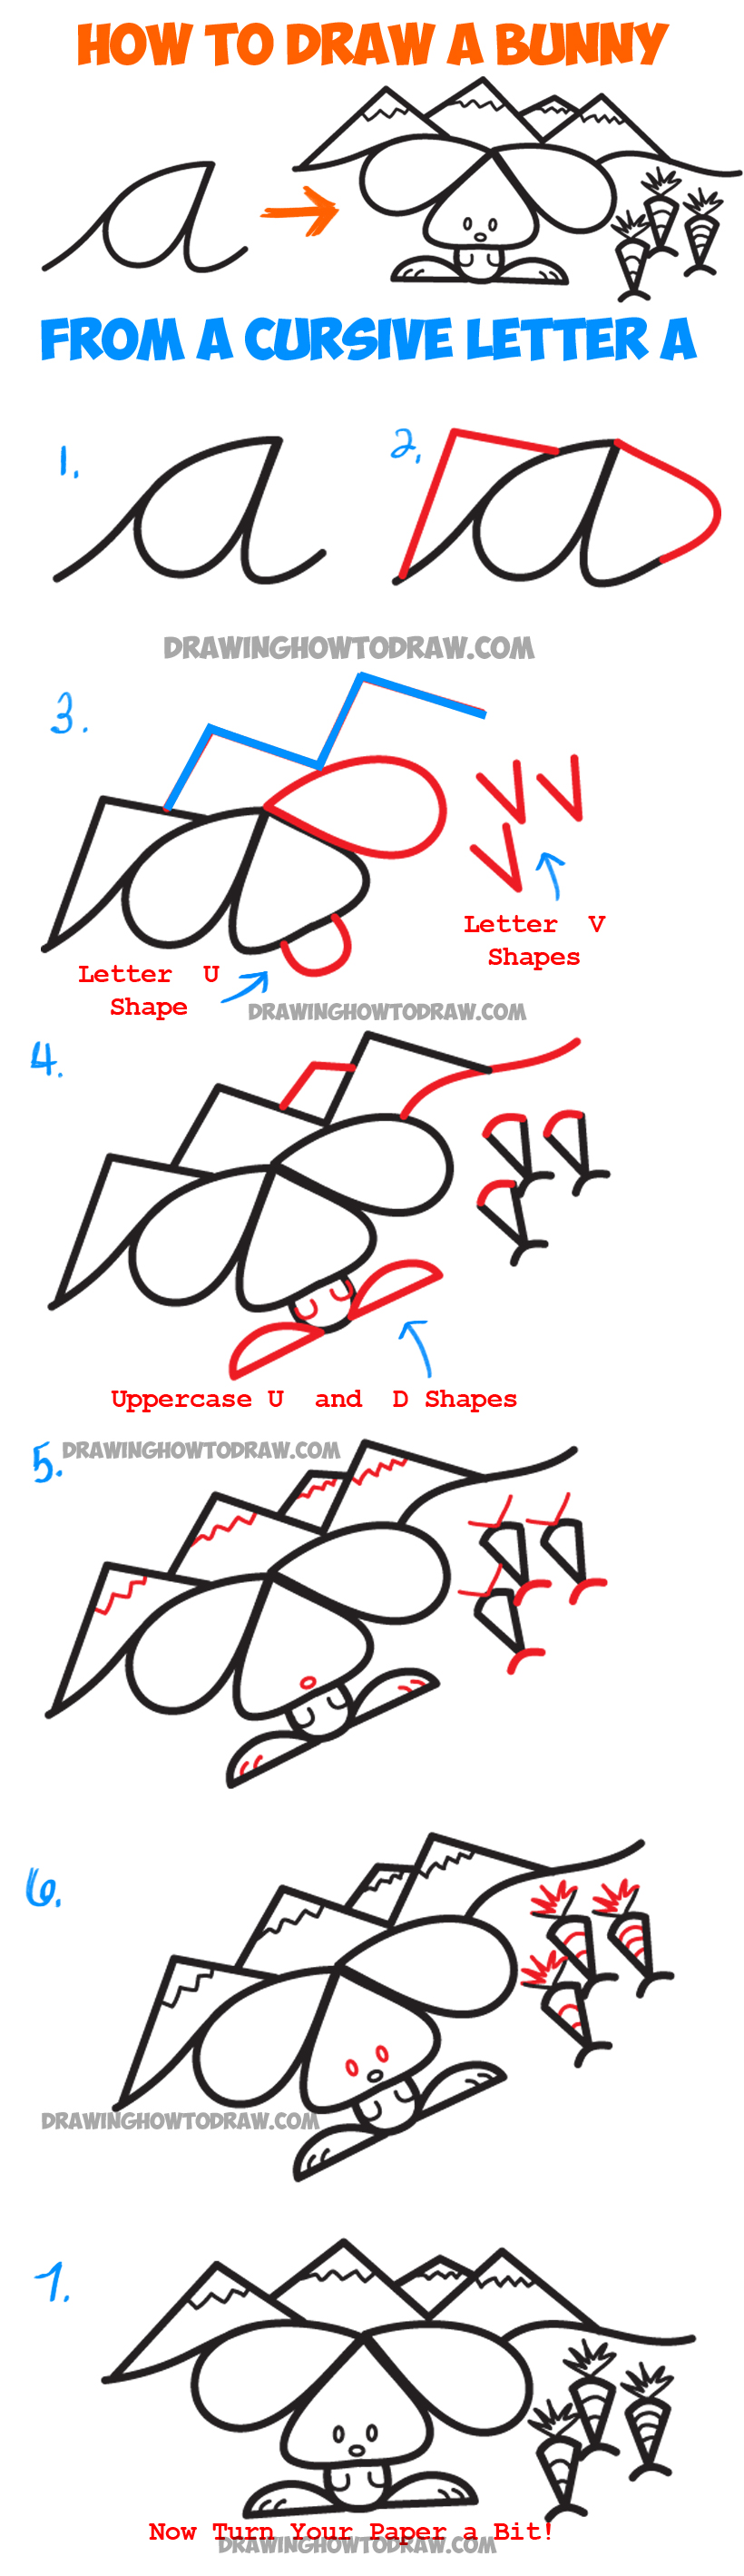 how to draw a cartoon bunny rabbit scene from lowercase cursive